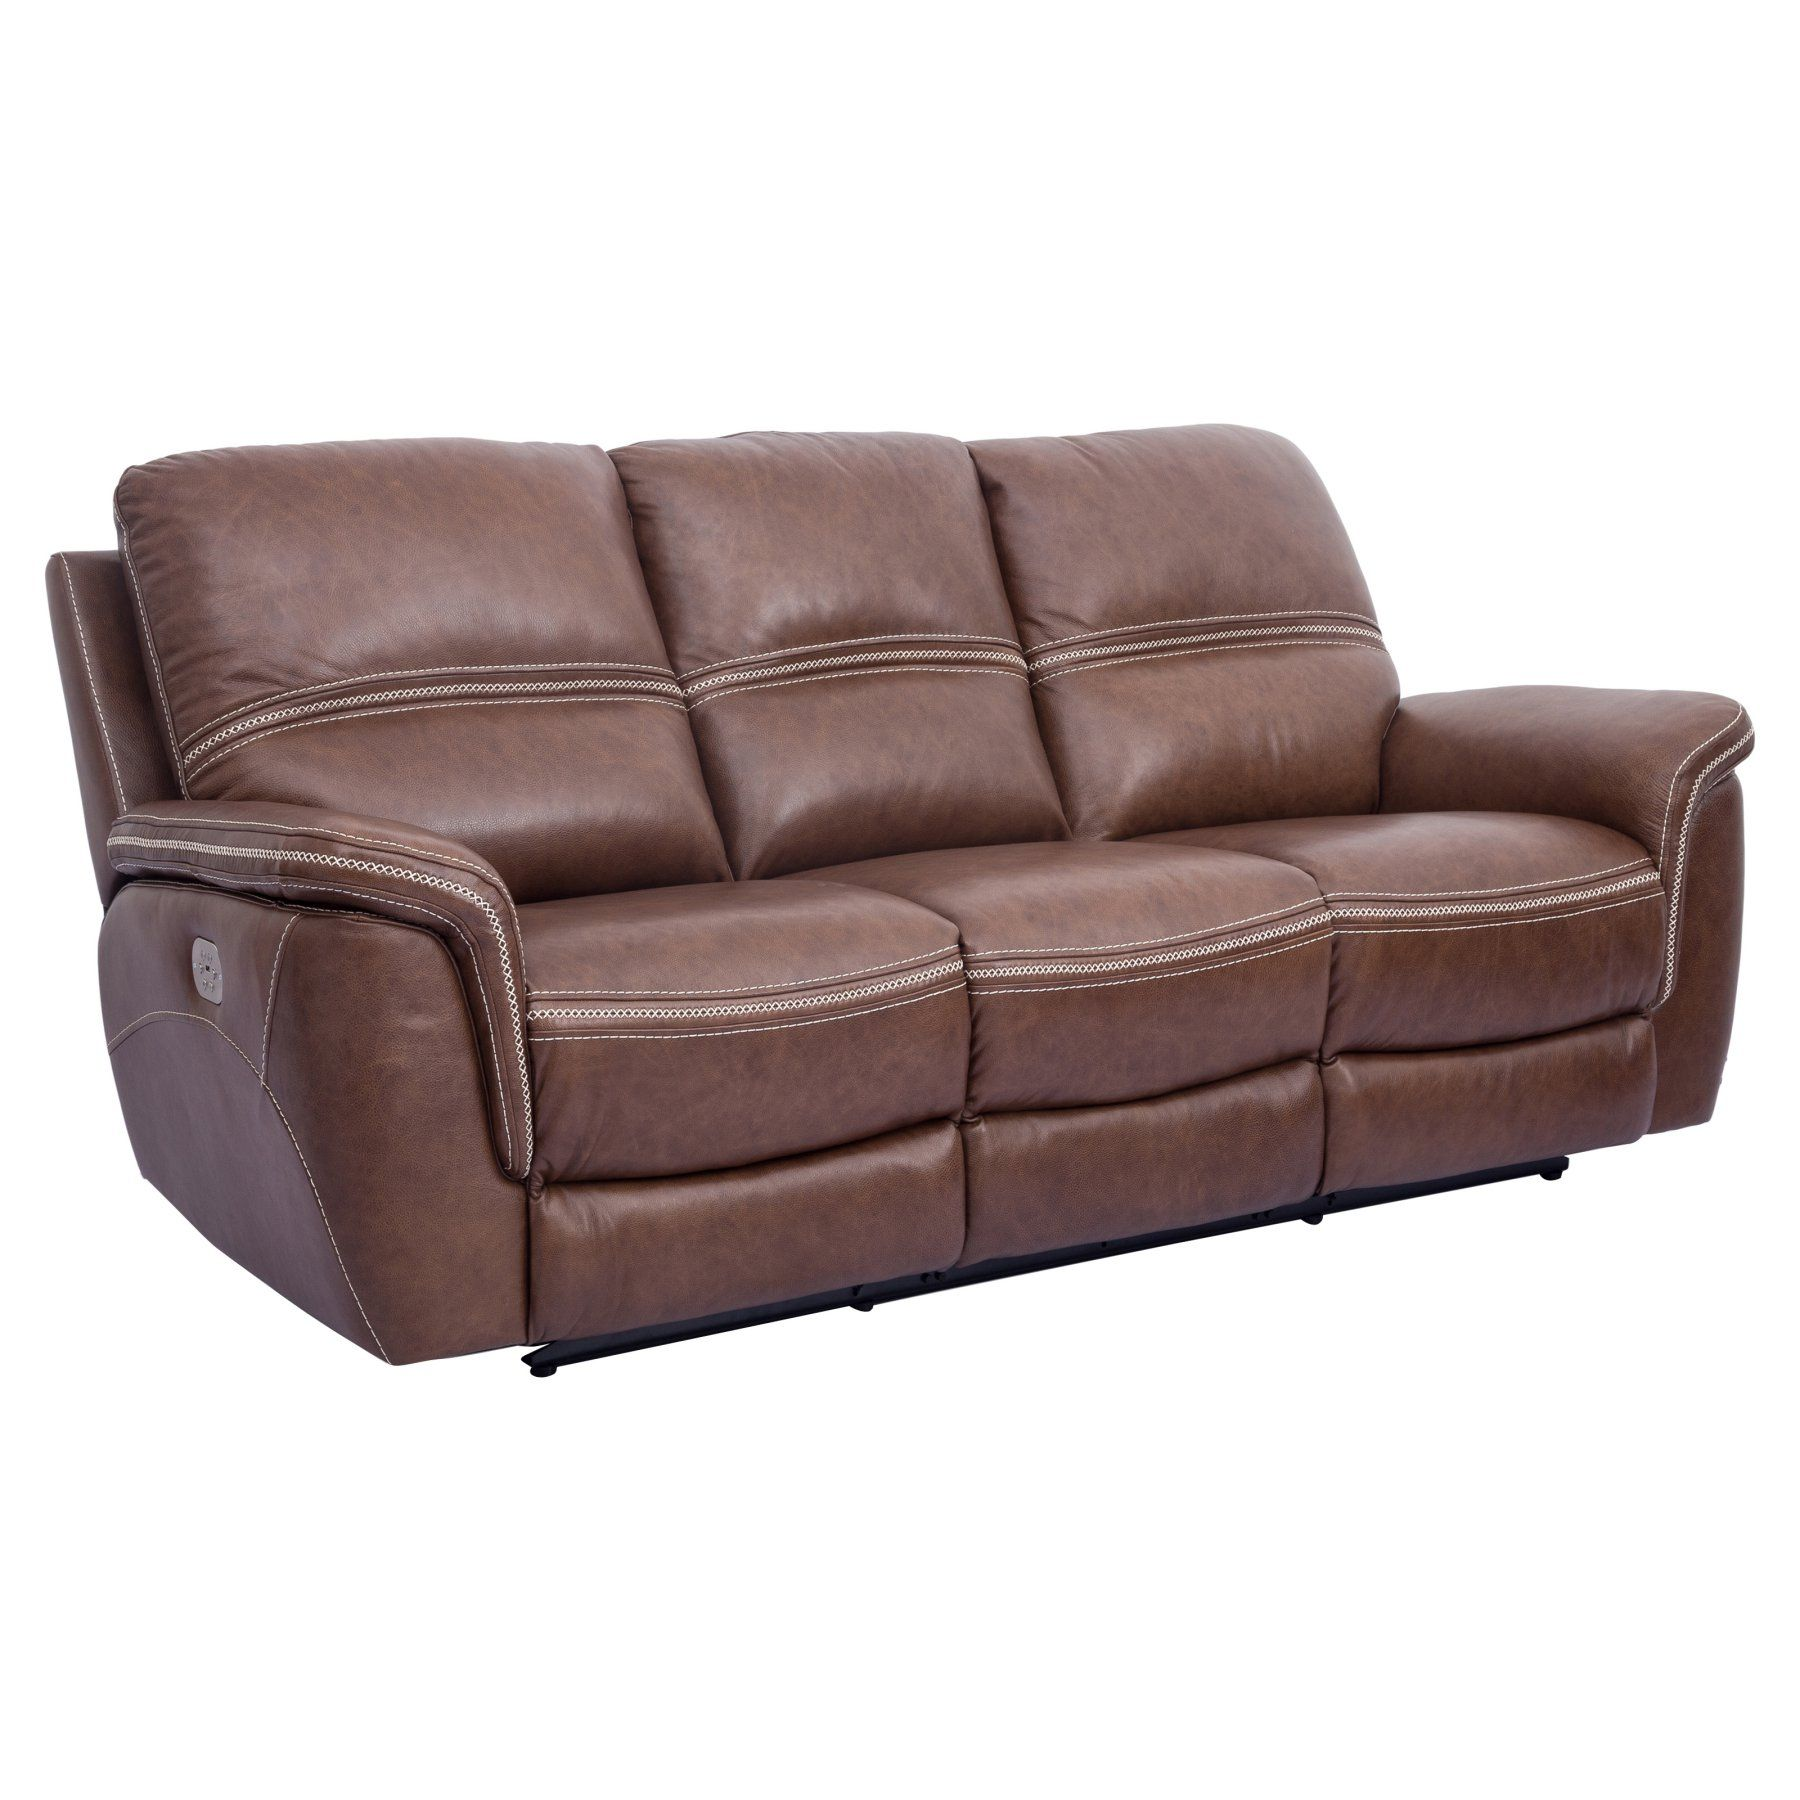 Enjoyable Stitch Time Mason Reclining Sofa Products Sofa Pabps2019 Chair Design Images Pabps2019Com